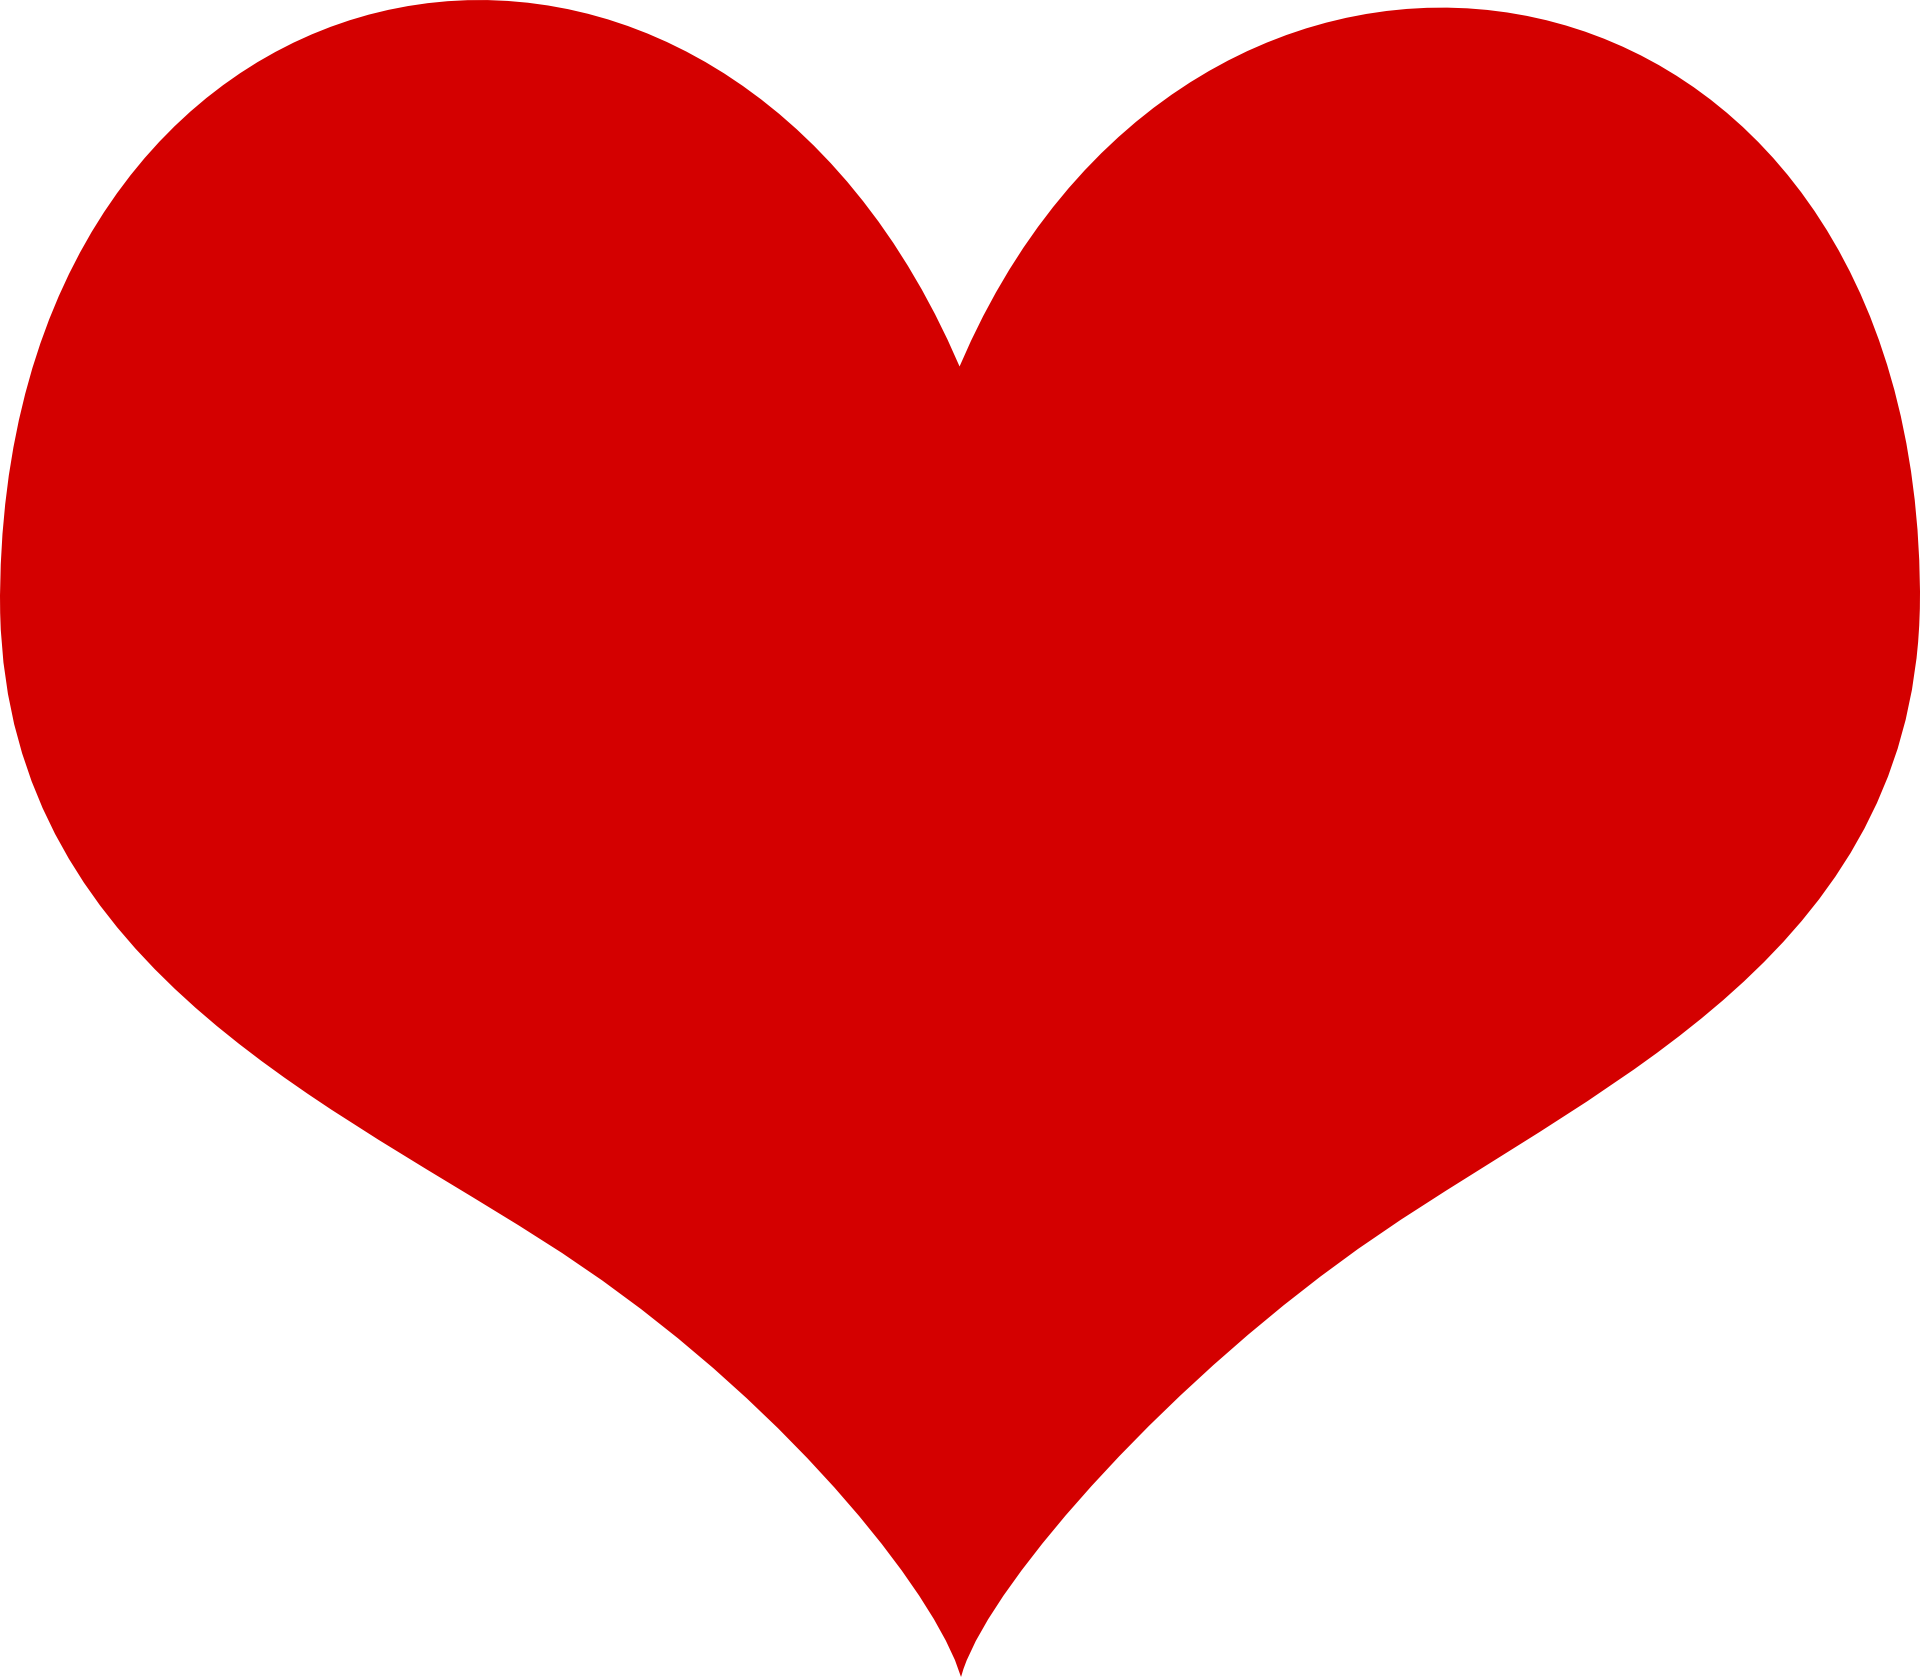 Red big heart clipart free image.